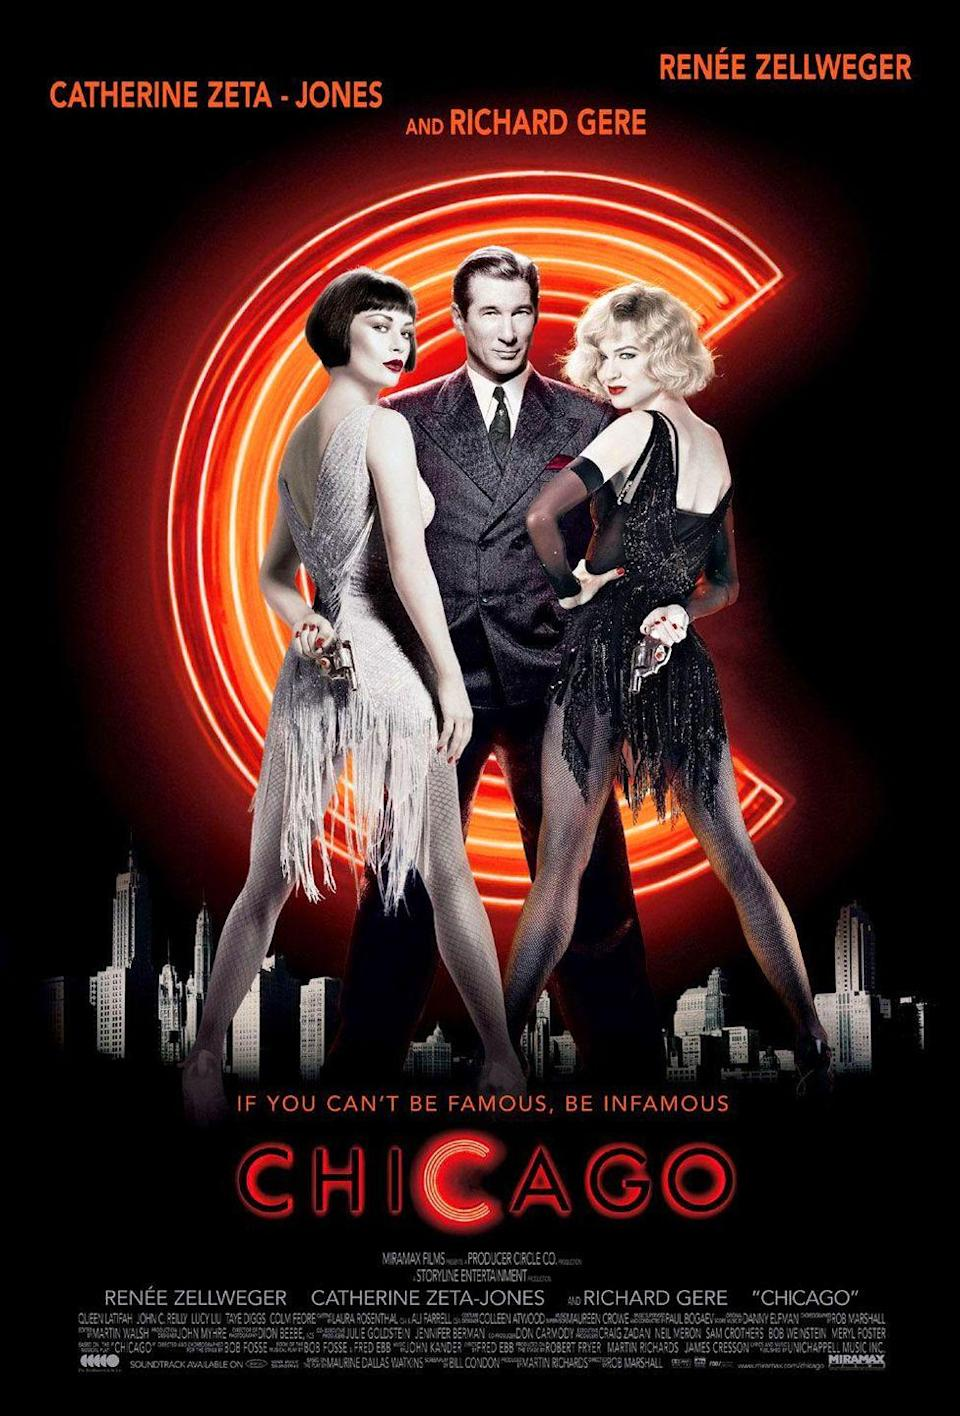 "<p><em><a href=""https://www.oprahmag.com/entertainment/a27056228/bob-fosse-gwen-verdon-true-story/"" rel=""nofollow noopener"" target=""_blank"" data-ylk=""slk:Chicago"" class=""link rapid-noclick-resp"">Chicago </a></em>is a prime example of how to do a stage-to-screen adaptation flawlessly. Catherine Zeta-Jones and <a href=""https://www.oprahmag.com/entertainment/a27420426/renee-zellweger-judy-garland-transformation-photo/"" rel=""nofollow noopener"" target=""_blank"" data-ylk=""slk:Renée Zellweger"" class=""link rapid-noclick-resp"">Renée Zellweger</a> co-star as two lounge singers who get more fame than they ever had before when they're put on trial for murder. Richard Gere's Billy Flynn is the lawyer hired to defend them and the man responsible for turning the whole thing into a media frenzy. Three words: Cell Block Tango.</p><p><a class=""link rapid-noclick-resp"" href=""https://www.amazon.com/Chicago-Catherine-Zeta-Jones/dp/B003QS62SM/ref=sr_1_2?tag=syn-yahoo-20&ascsubtag=%5Bartid%7C10063.g.34344525%5Bsrc%7Cyahoo-us"" rel=""nofollow noopener"" target=""_blank"" data-ylk=""slk:WATCH NOW"">WATCH NOW</a></p>"